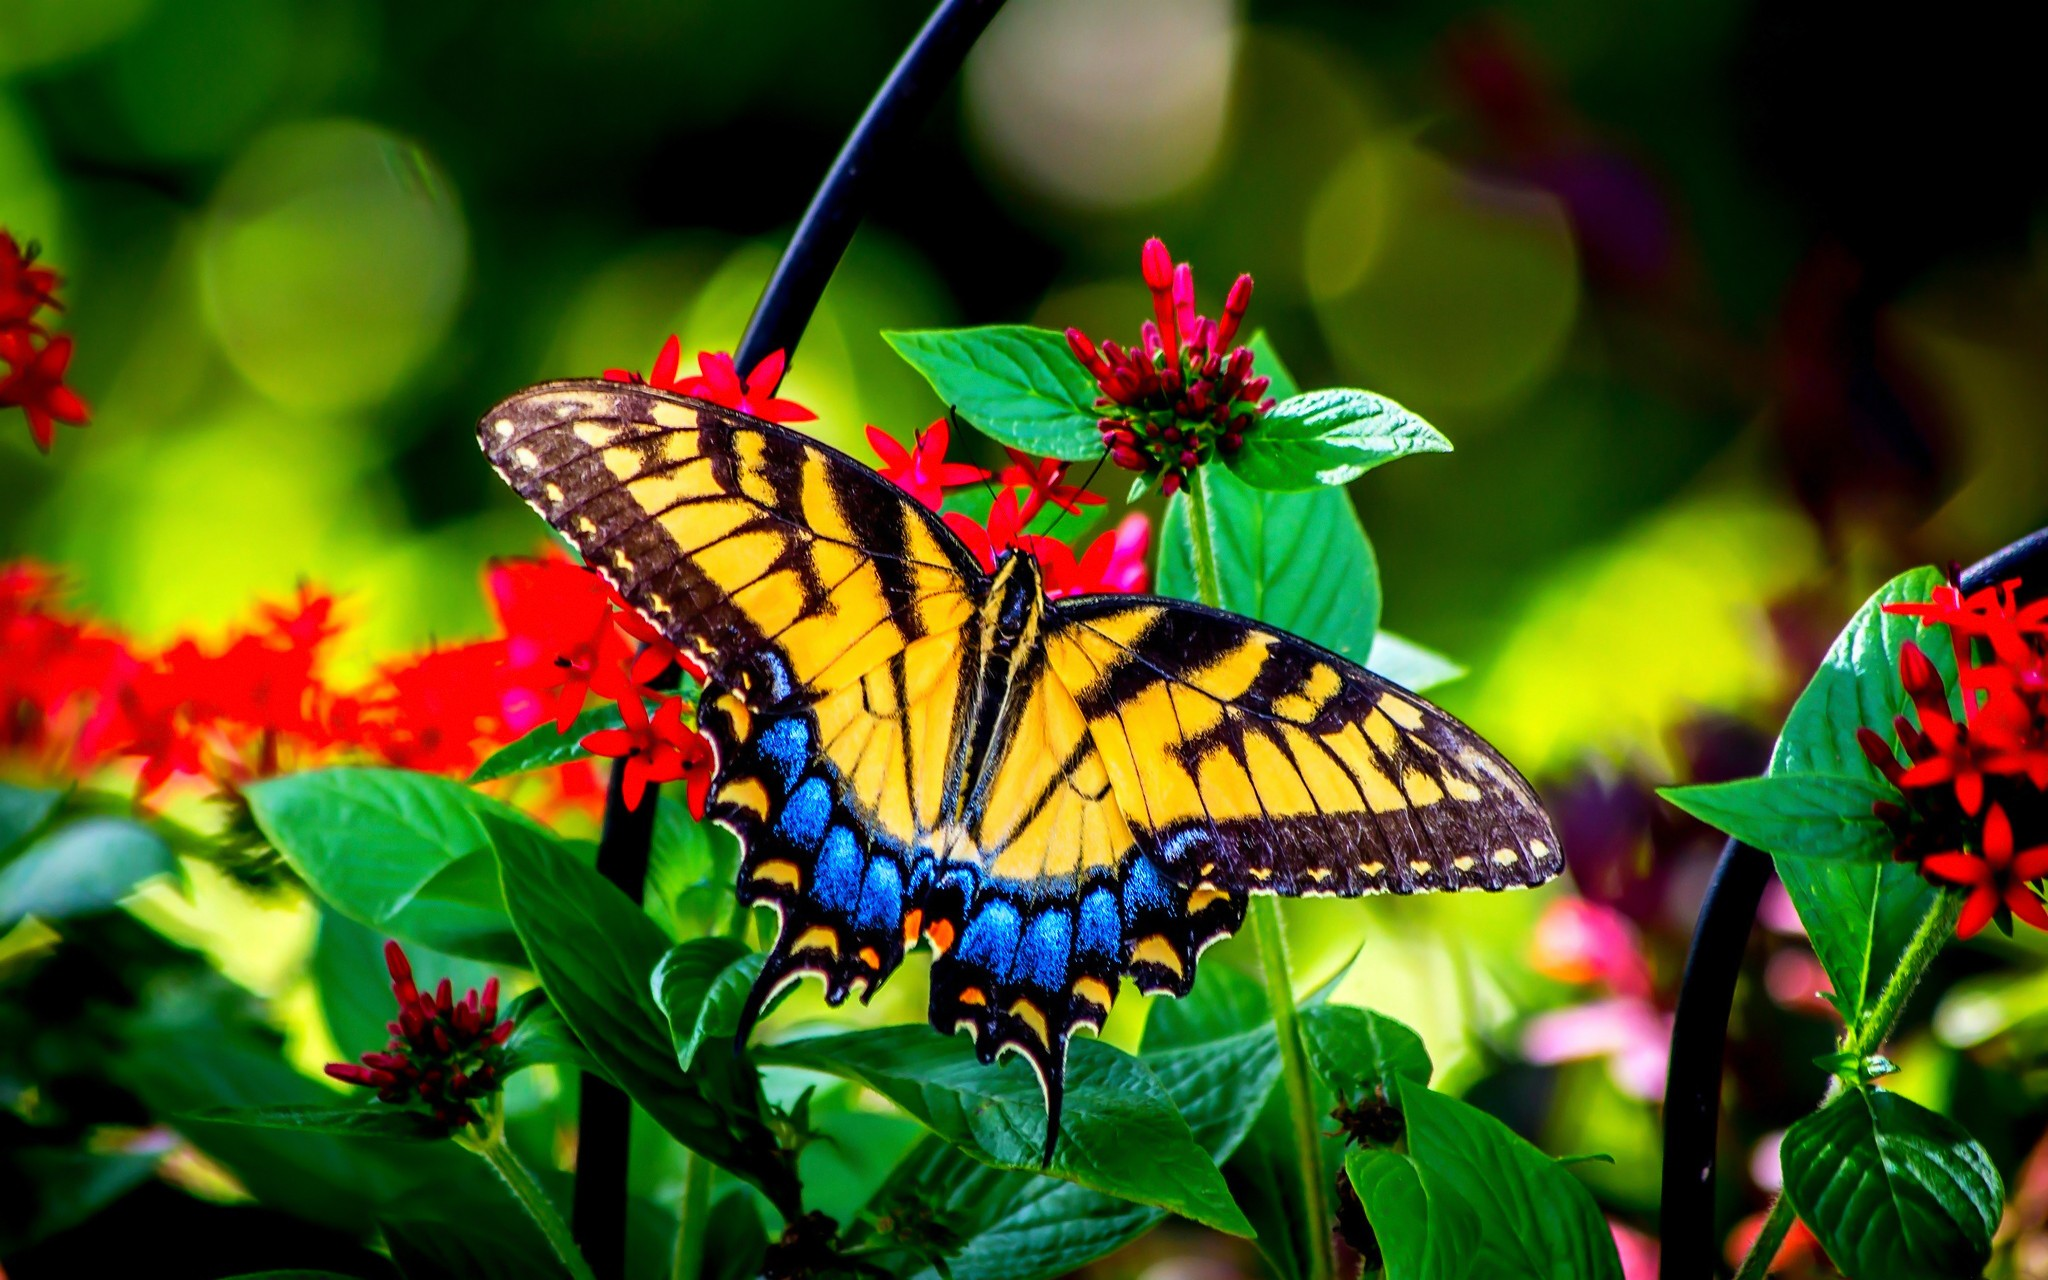 Beautiful Butterfly In Nature 2048x1280 Download Hd Wallpaper Wallpapertip,Tapered Rectangular Lamp Shades Uk